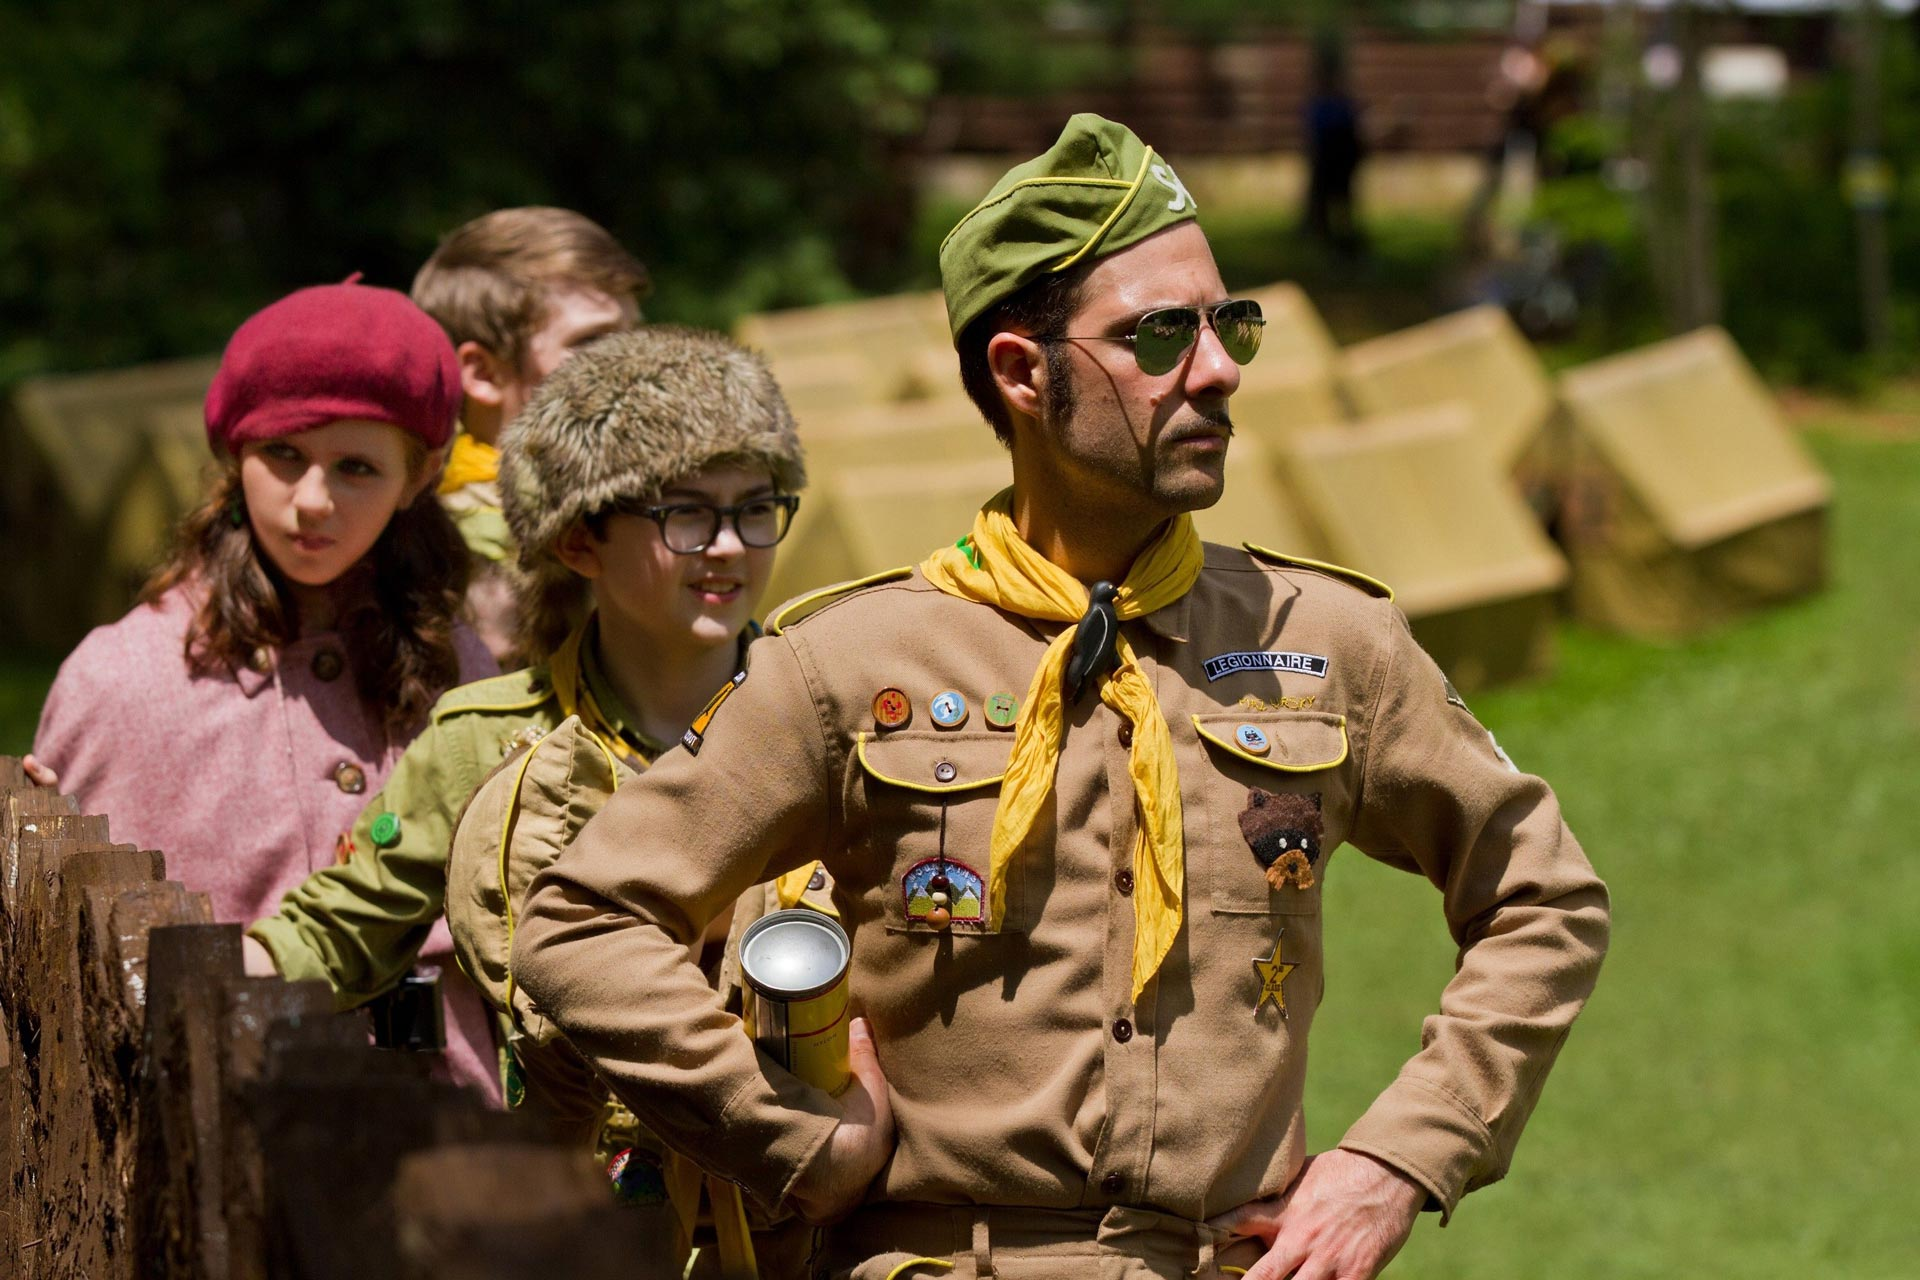 Jason Schwartzman Interview For Moonrise Kingdom Craig Skinner On Film Craig Skinner On Film